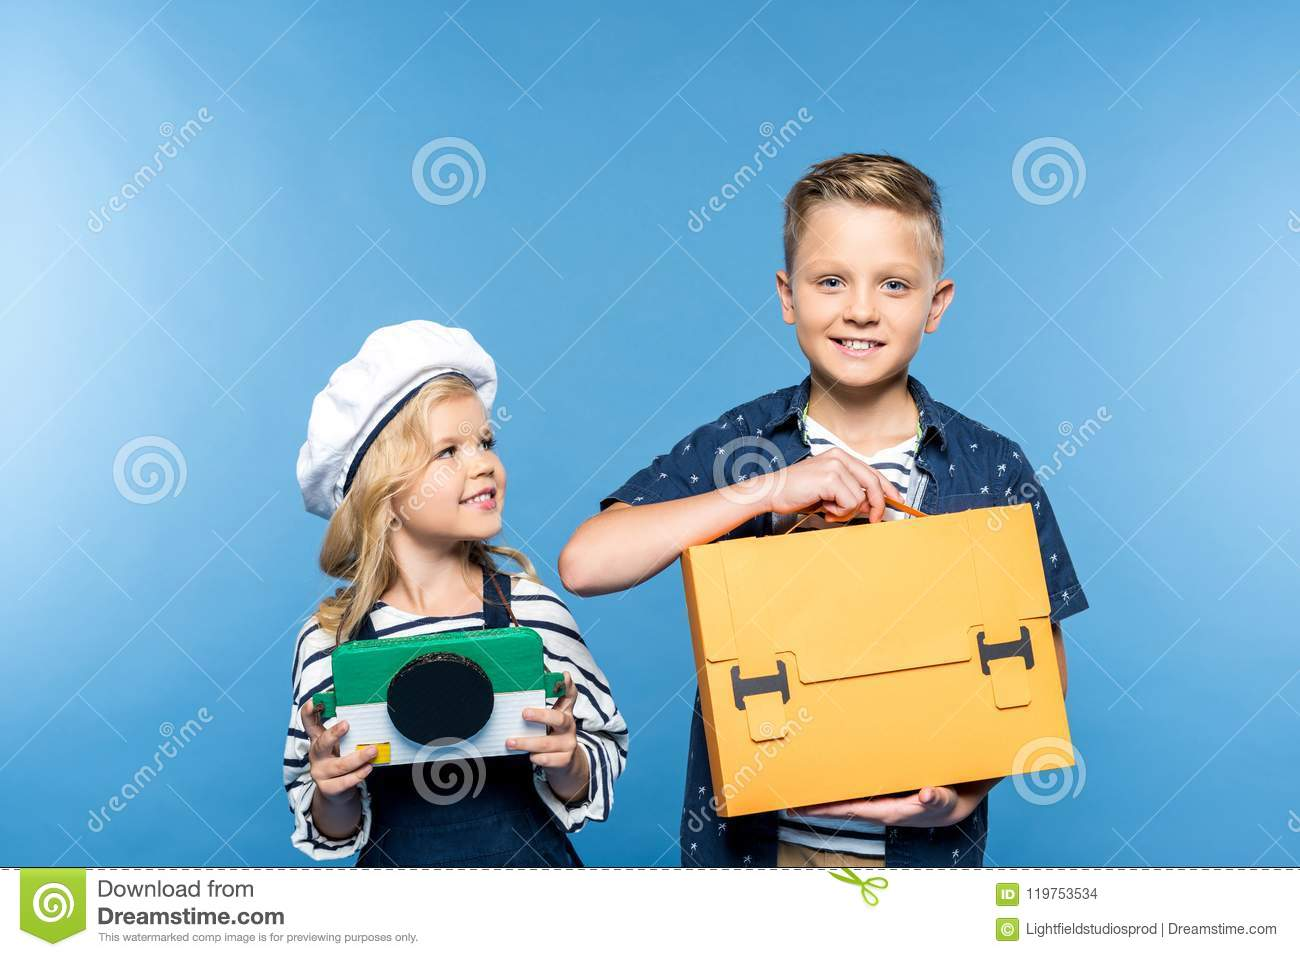 d624836aeb beautiful happy kids holding camera and briefcase isolated on blue